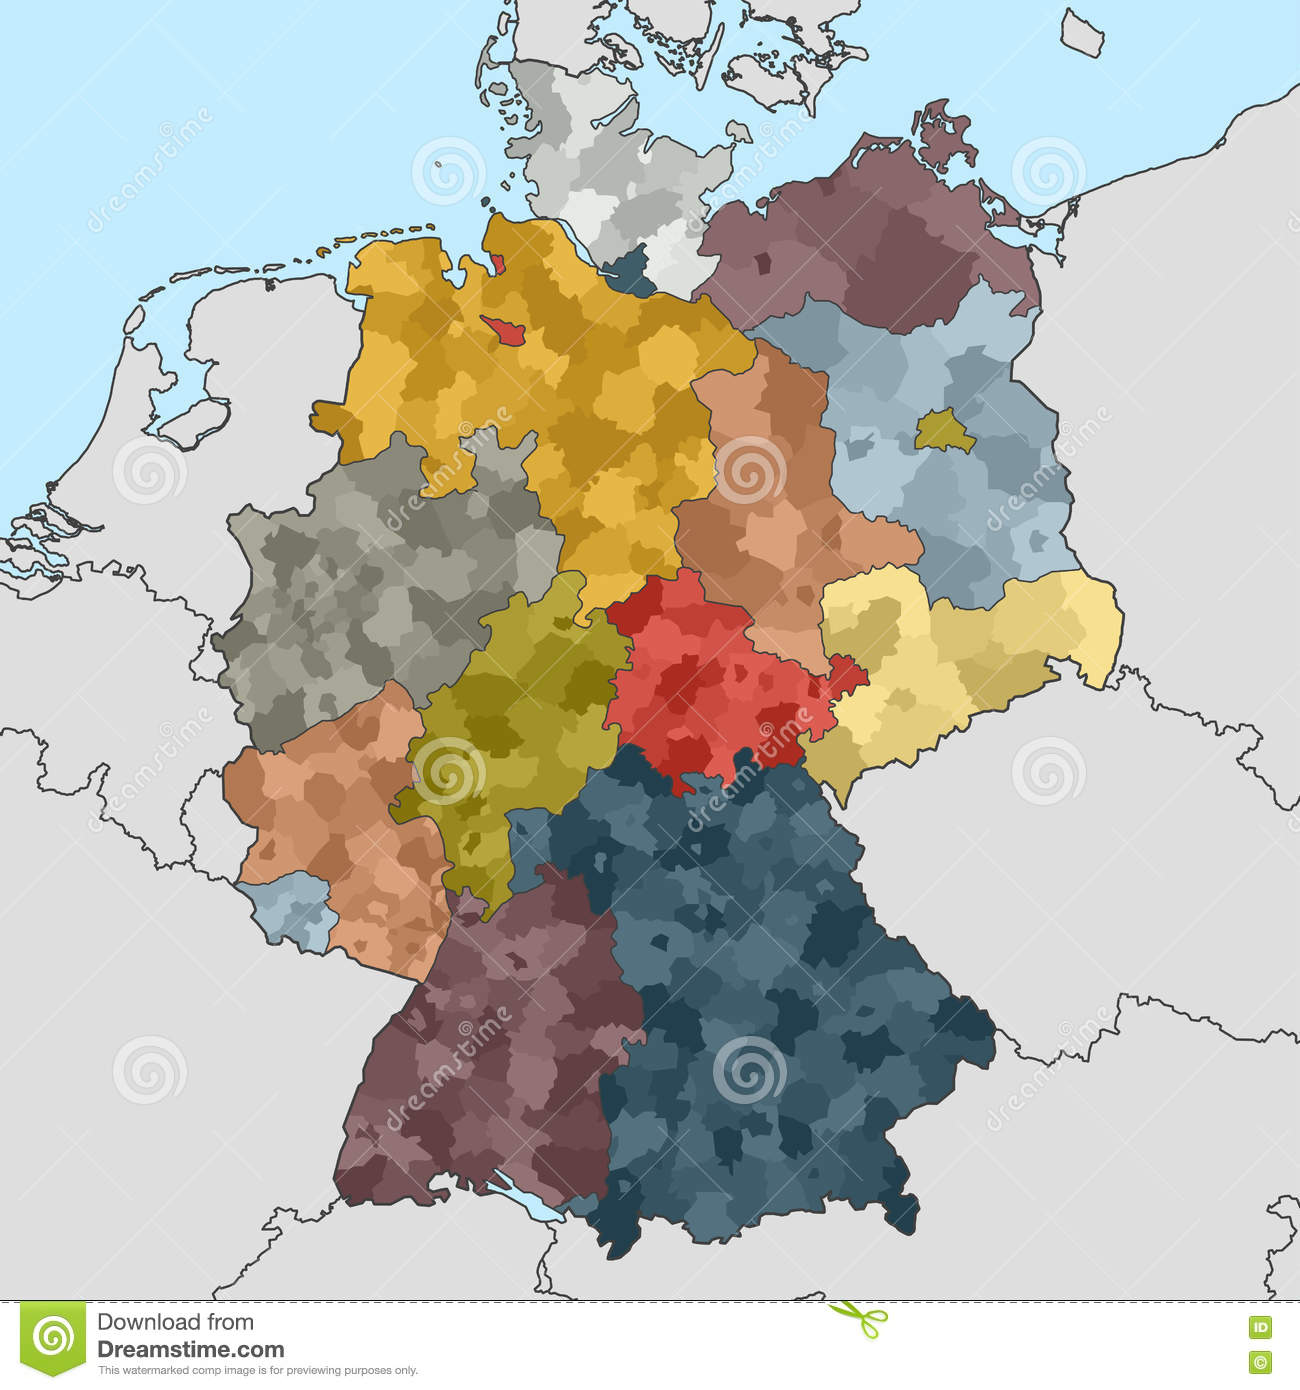 Map Of Germany And Surrounding Countries.Map Of Germany With Neighboring Countries Stock Vector